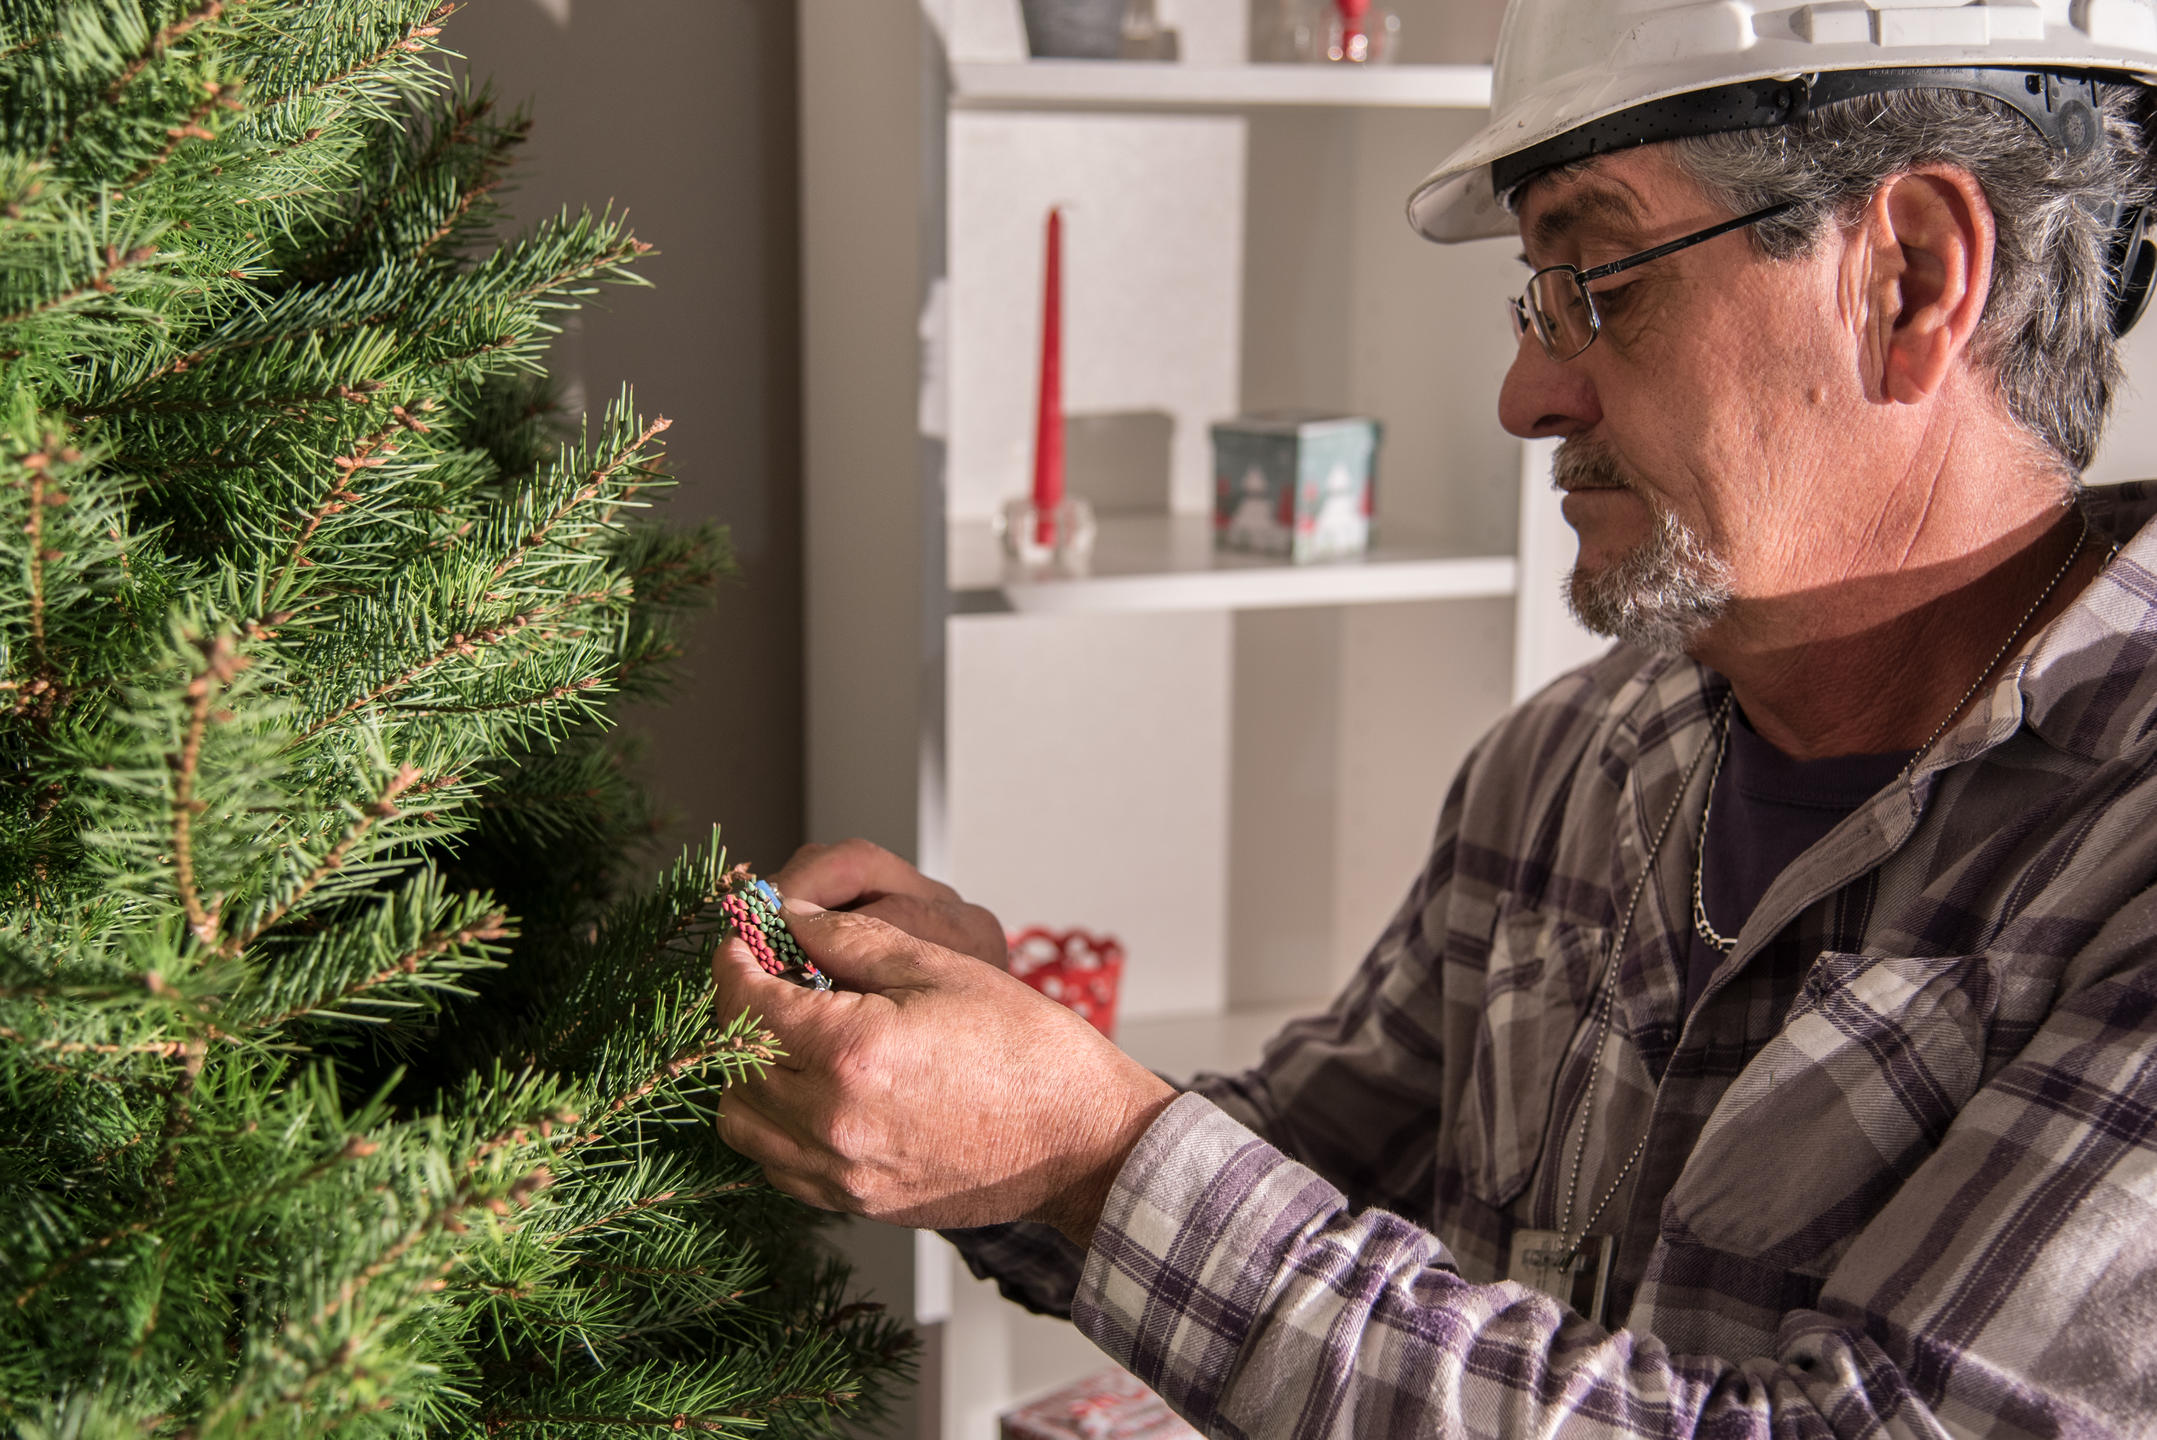 NIST technician placing a book of matches into a Christmas tree